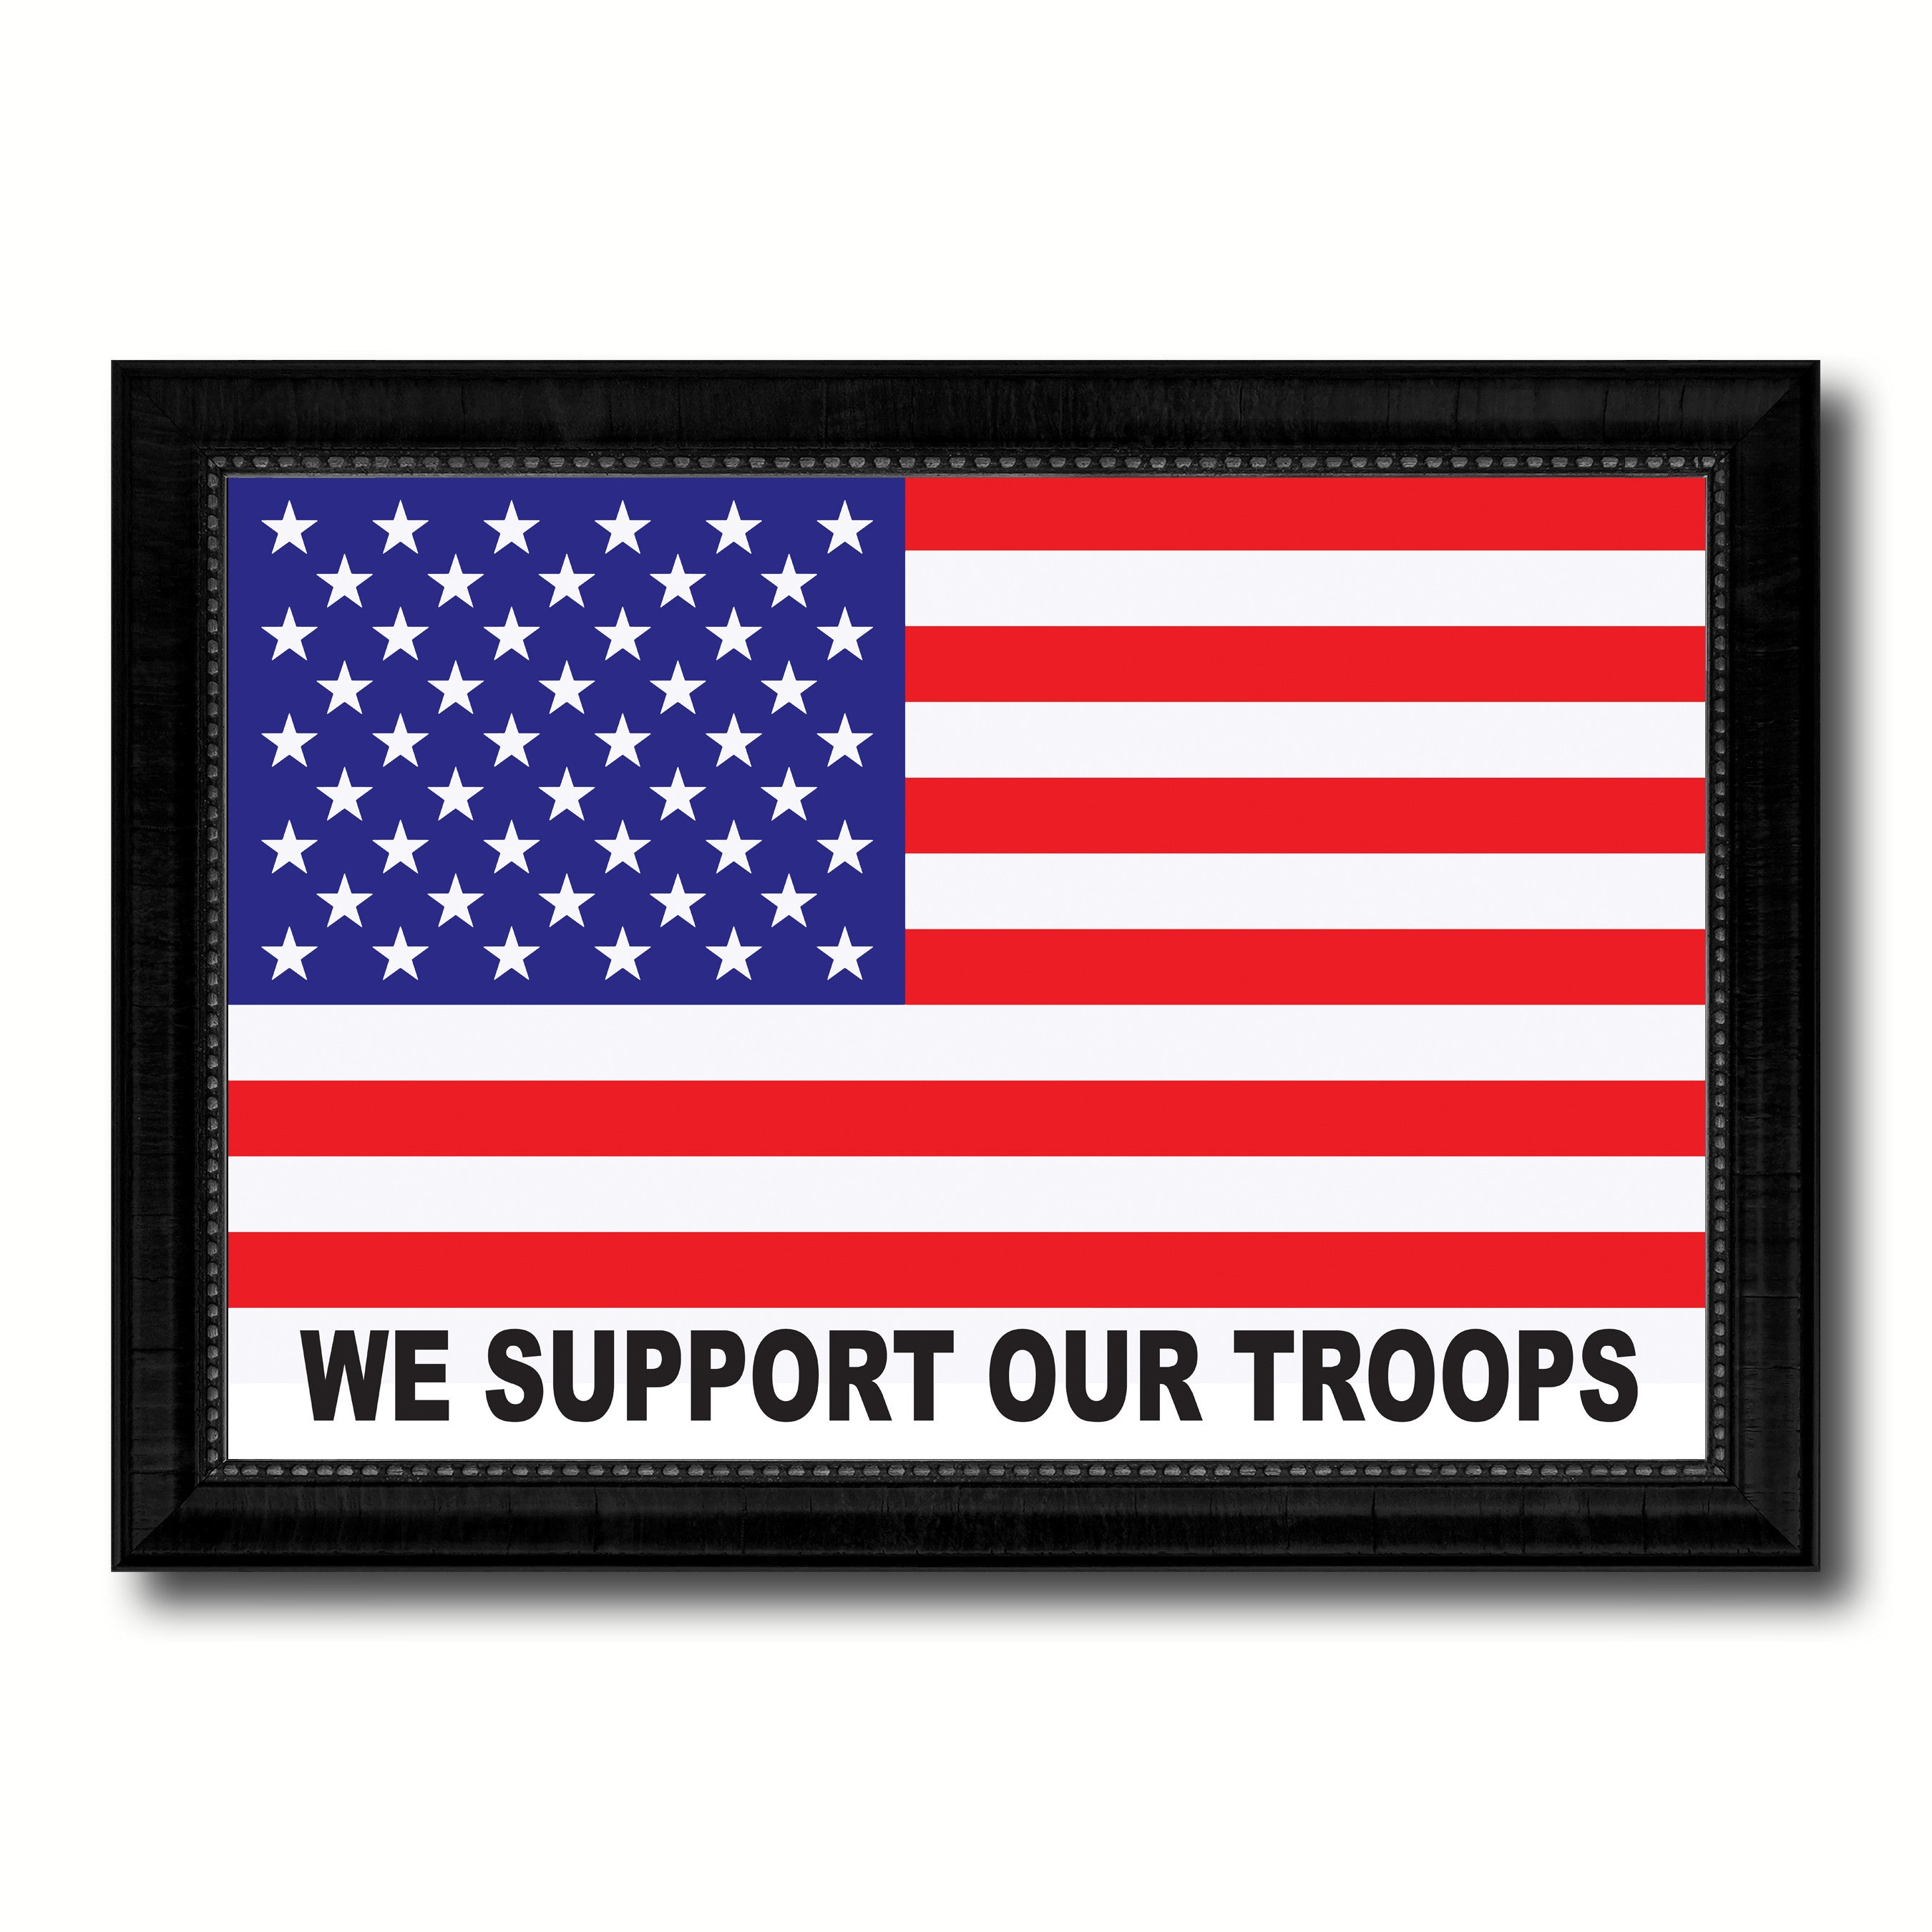 We Support Our Troops Military Flag Canvas Print Black Picture Frame Gifts Home Decor Wall Art